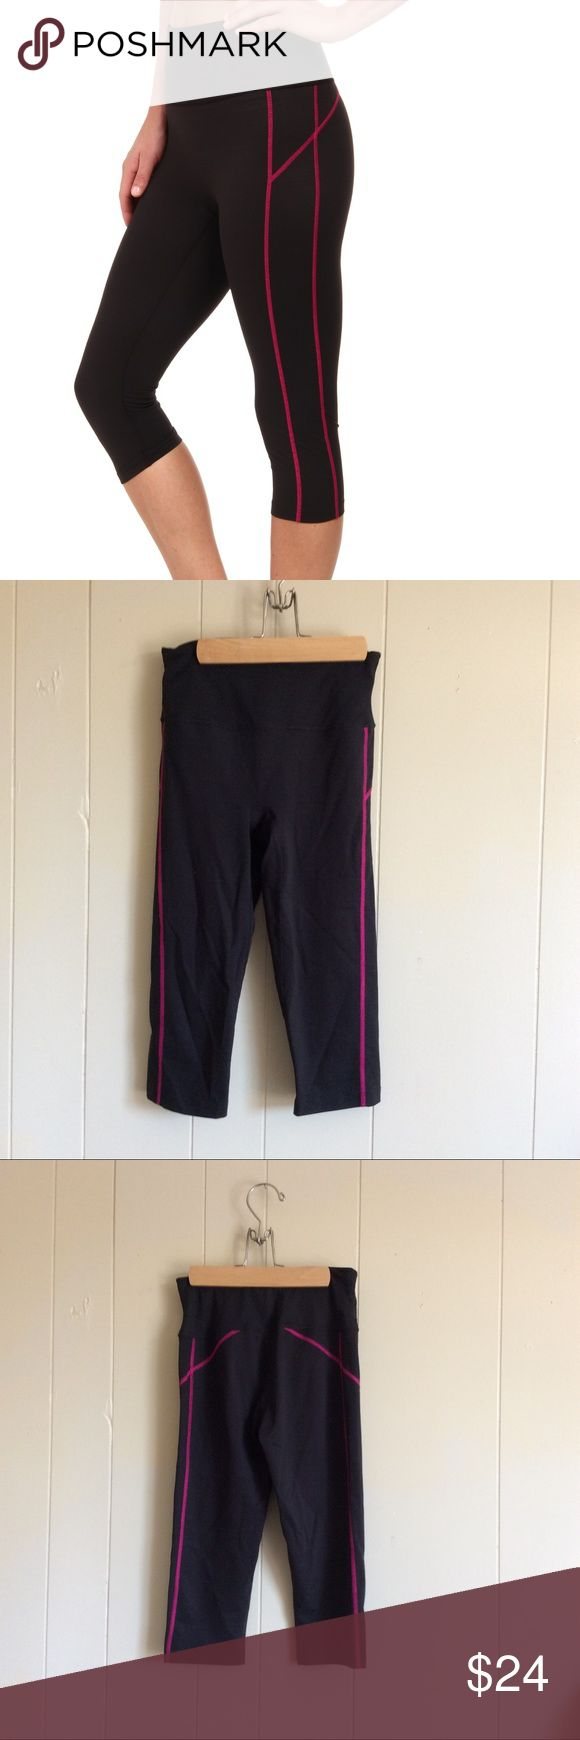 Sz Small NWOT SPANX compression knee pants black NWOT spanx size small athletic compression knee pants black with pink detailing. SPANX Pants